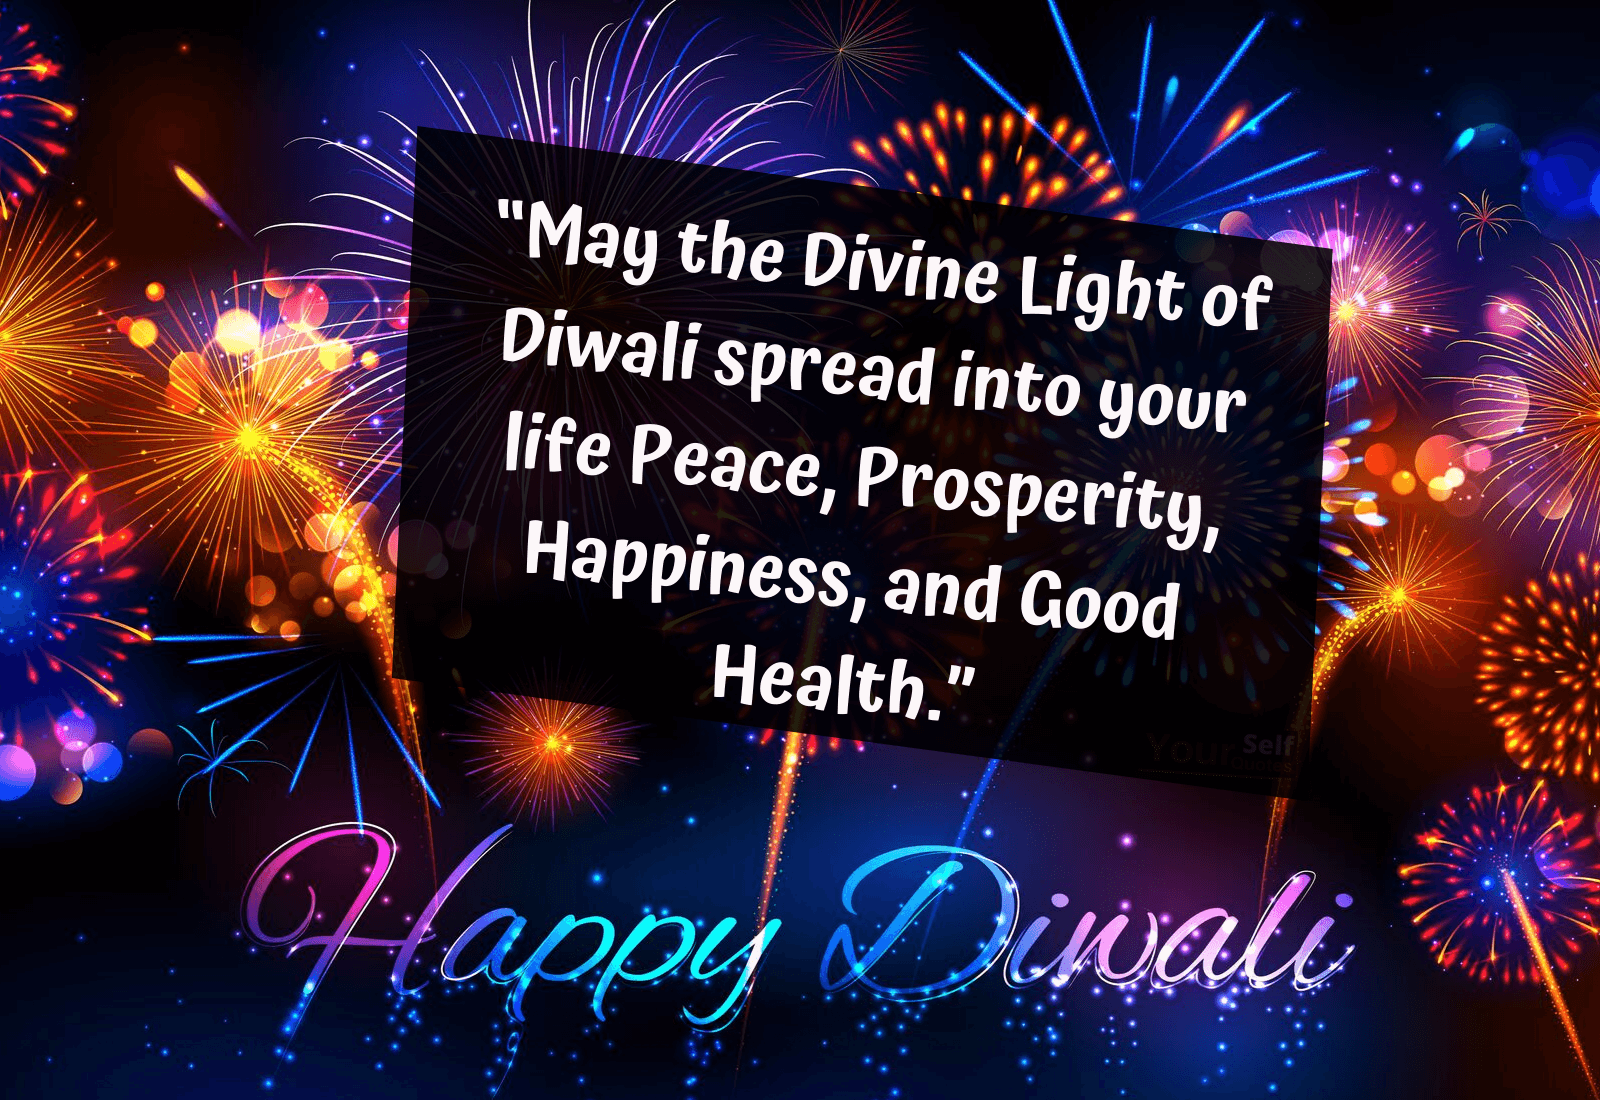 Best Happy Deepawali Images